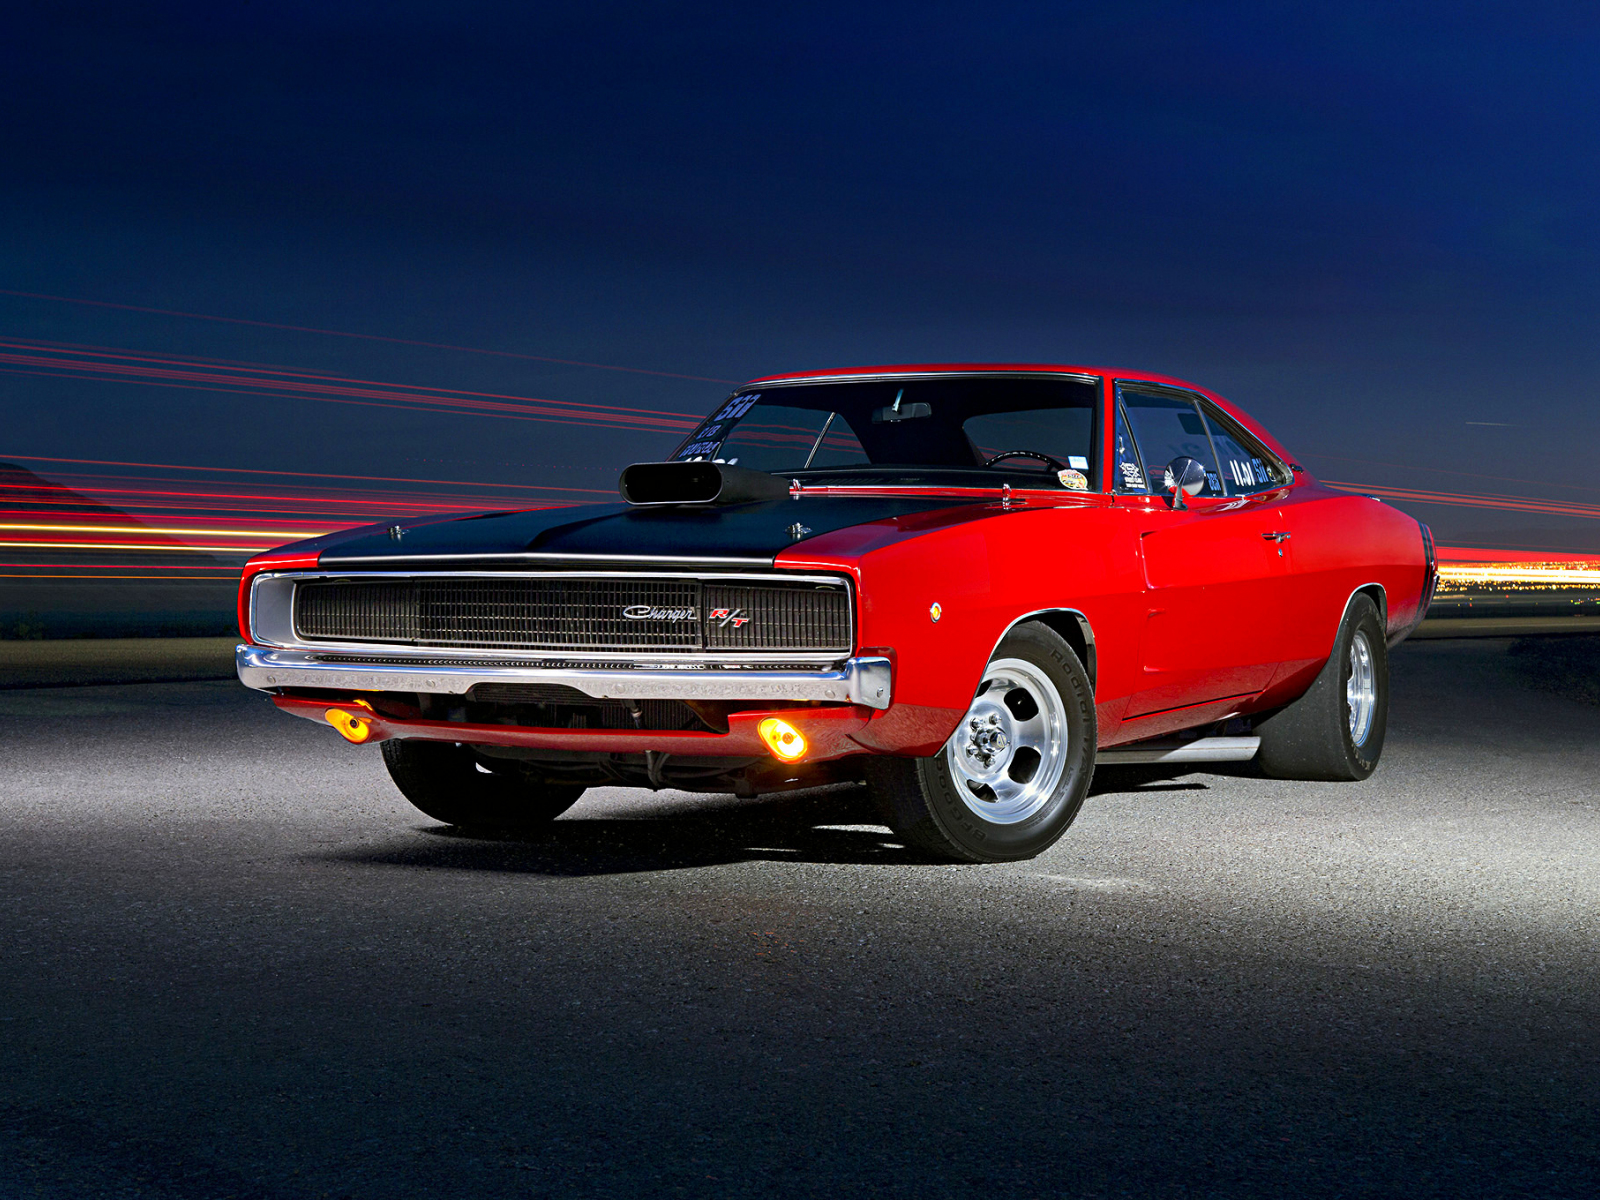 Check out all the images that our petrol head friends manually selected for you and tell us what your favorite one of them all is. Desktop Wallpaper Classic Muscle Car Red Dodge Charger Hd Image Picture Background Zjtb0s